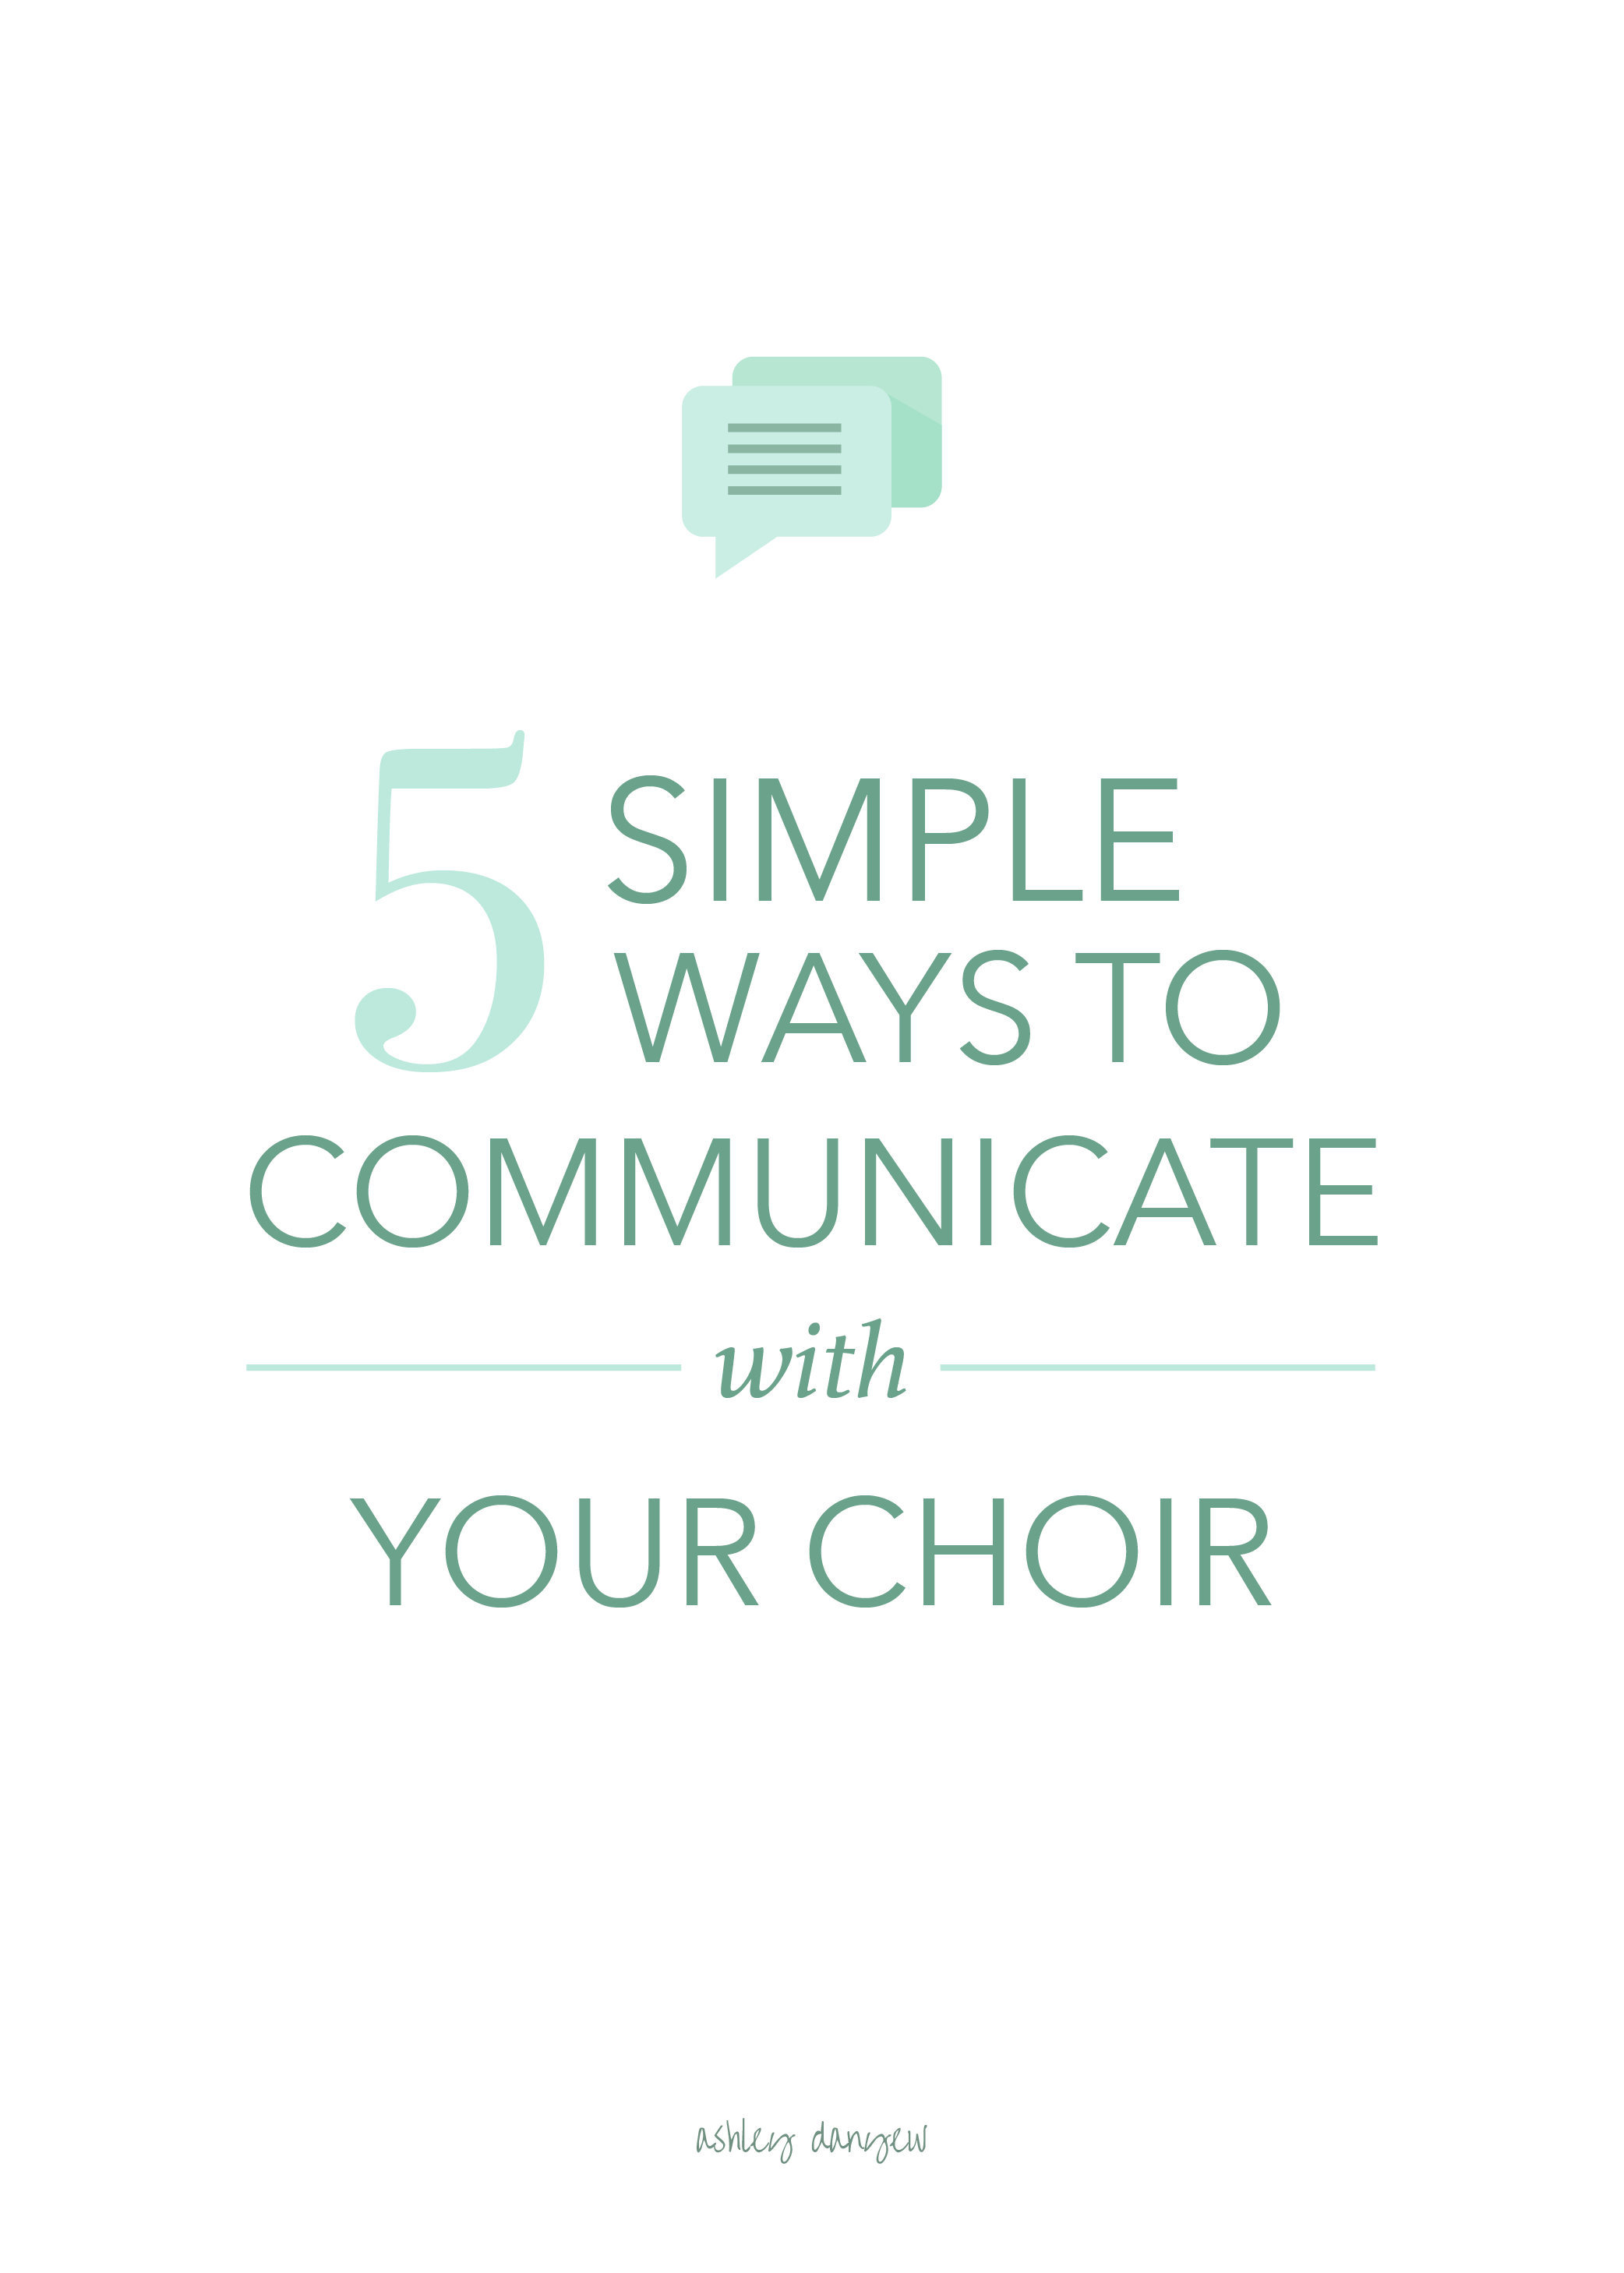 Copy of 5 Simple Ways to Communicate with Your Choir